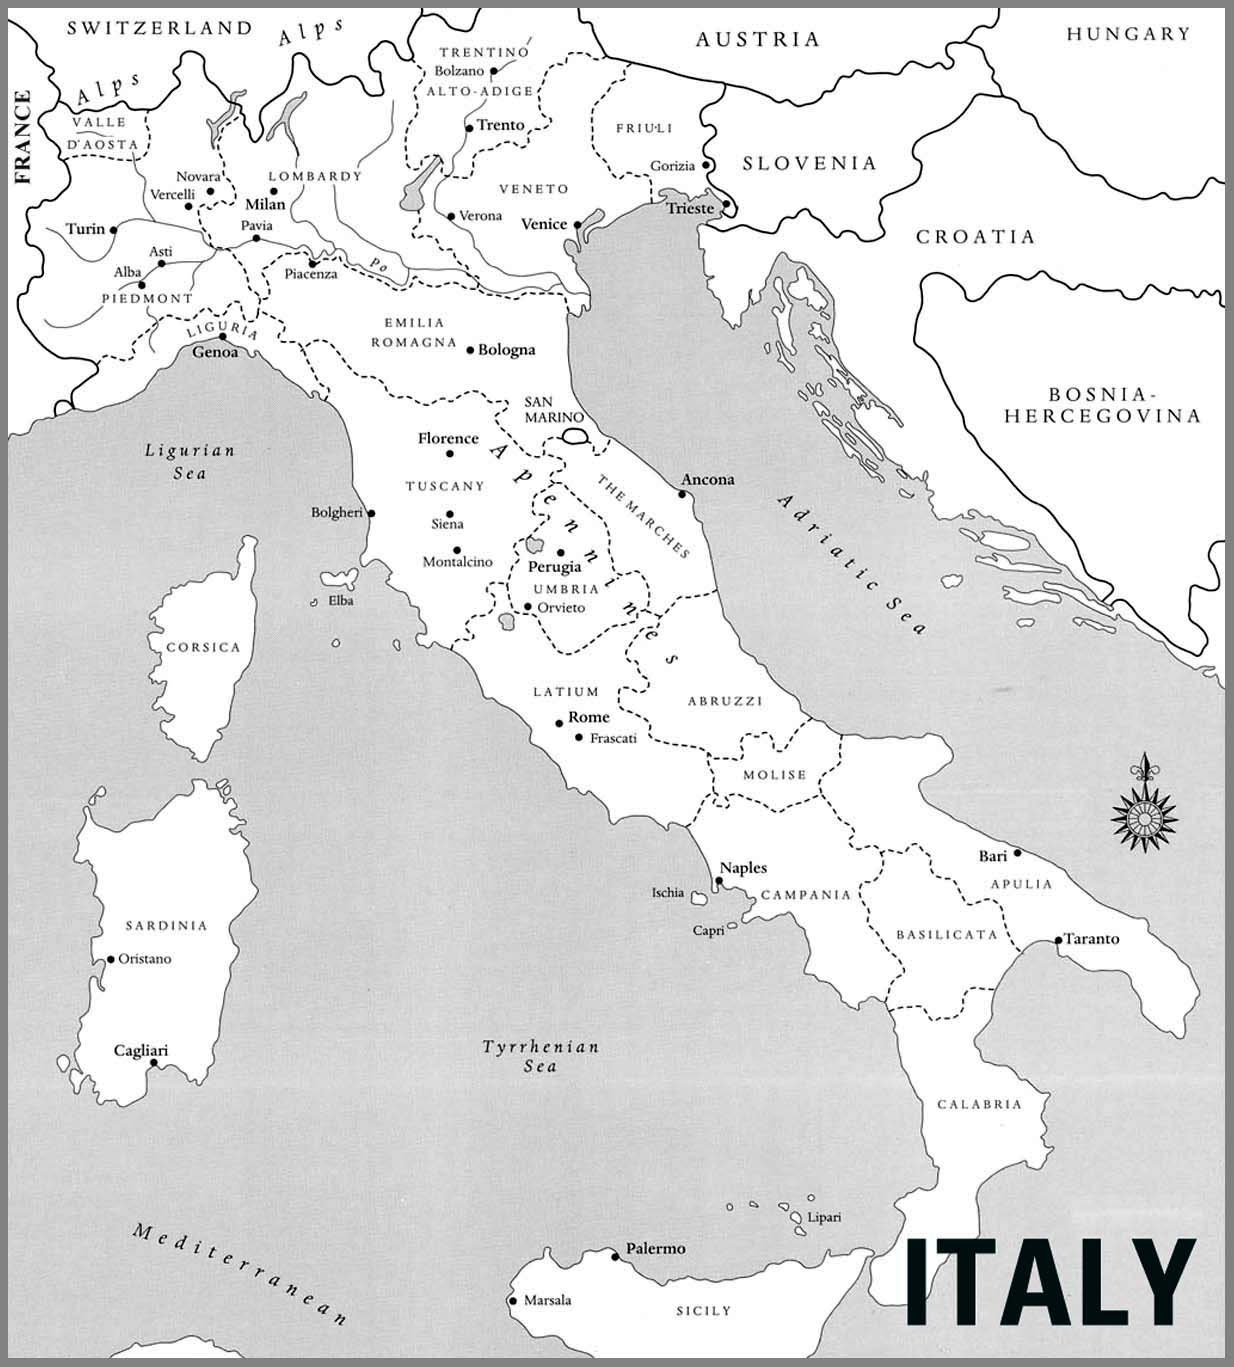 Detailed wine map of Italy Italy detailed wine map Vidianicom